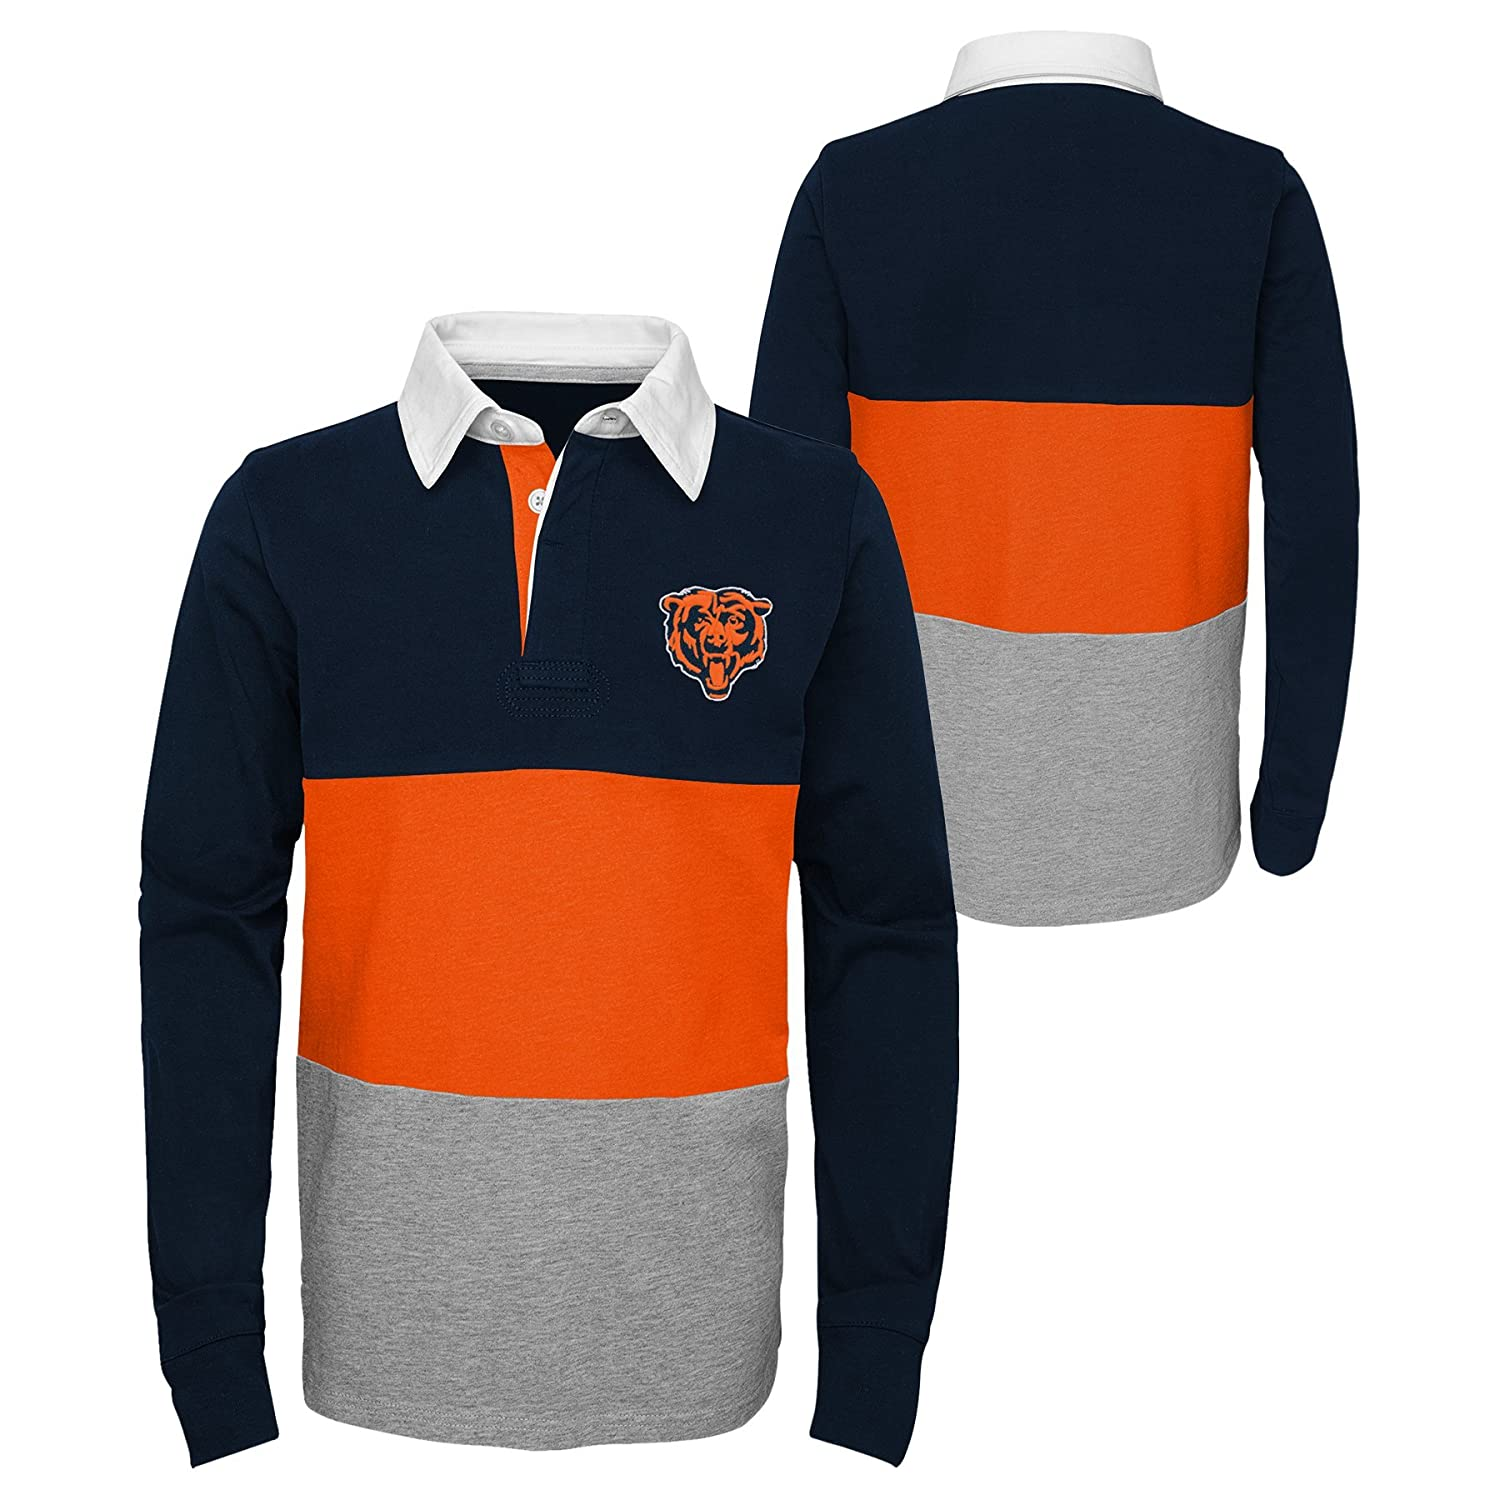 Youth X-Large 18 Outerstuff NFL Chicago Bears Youth Boys State of Mind Long Sleeve Rugby Top Deep Obsidian